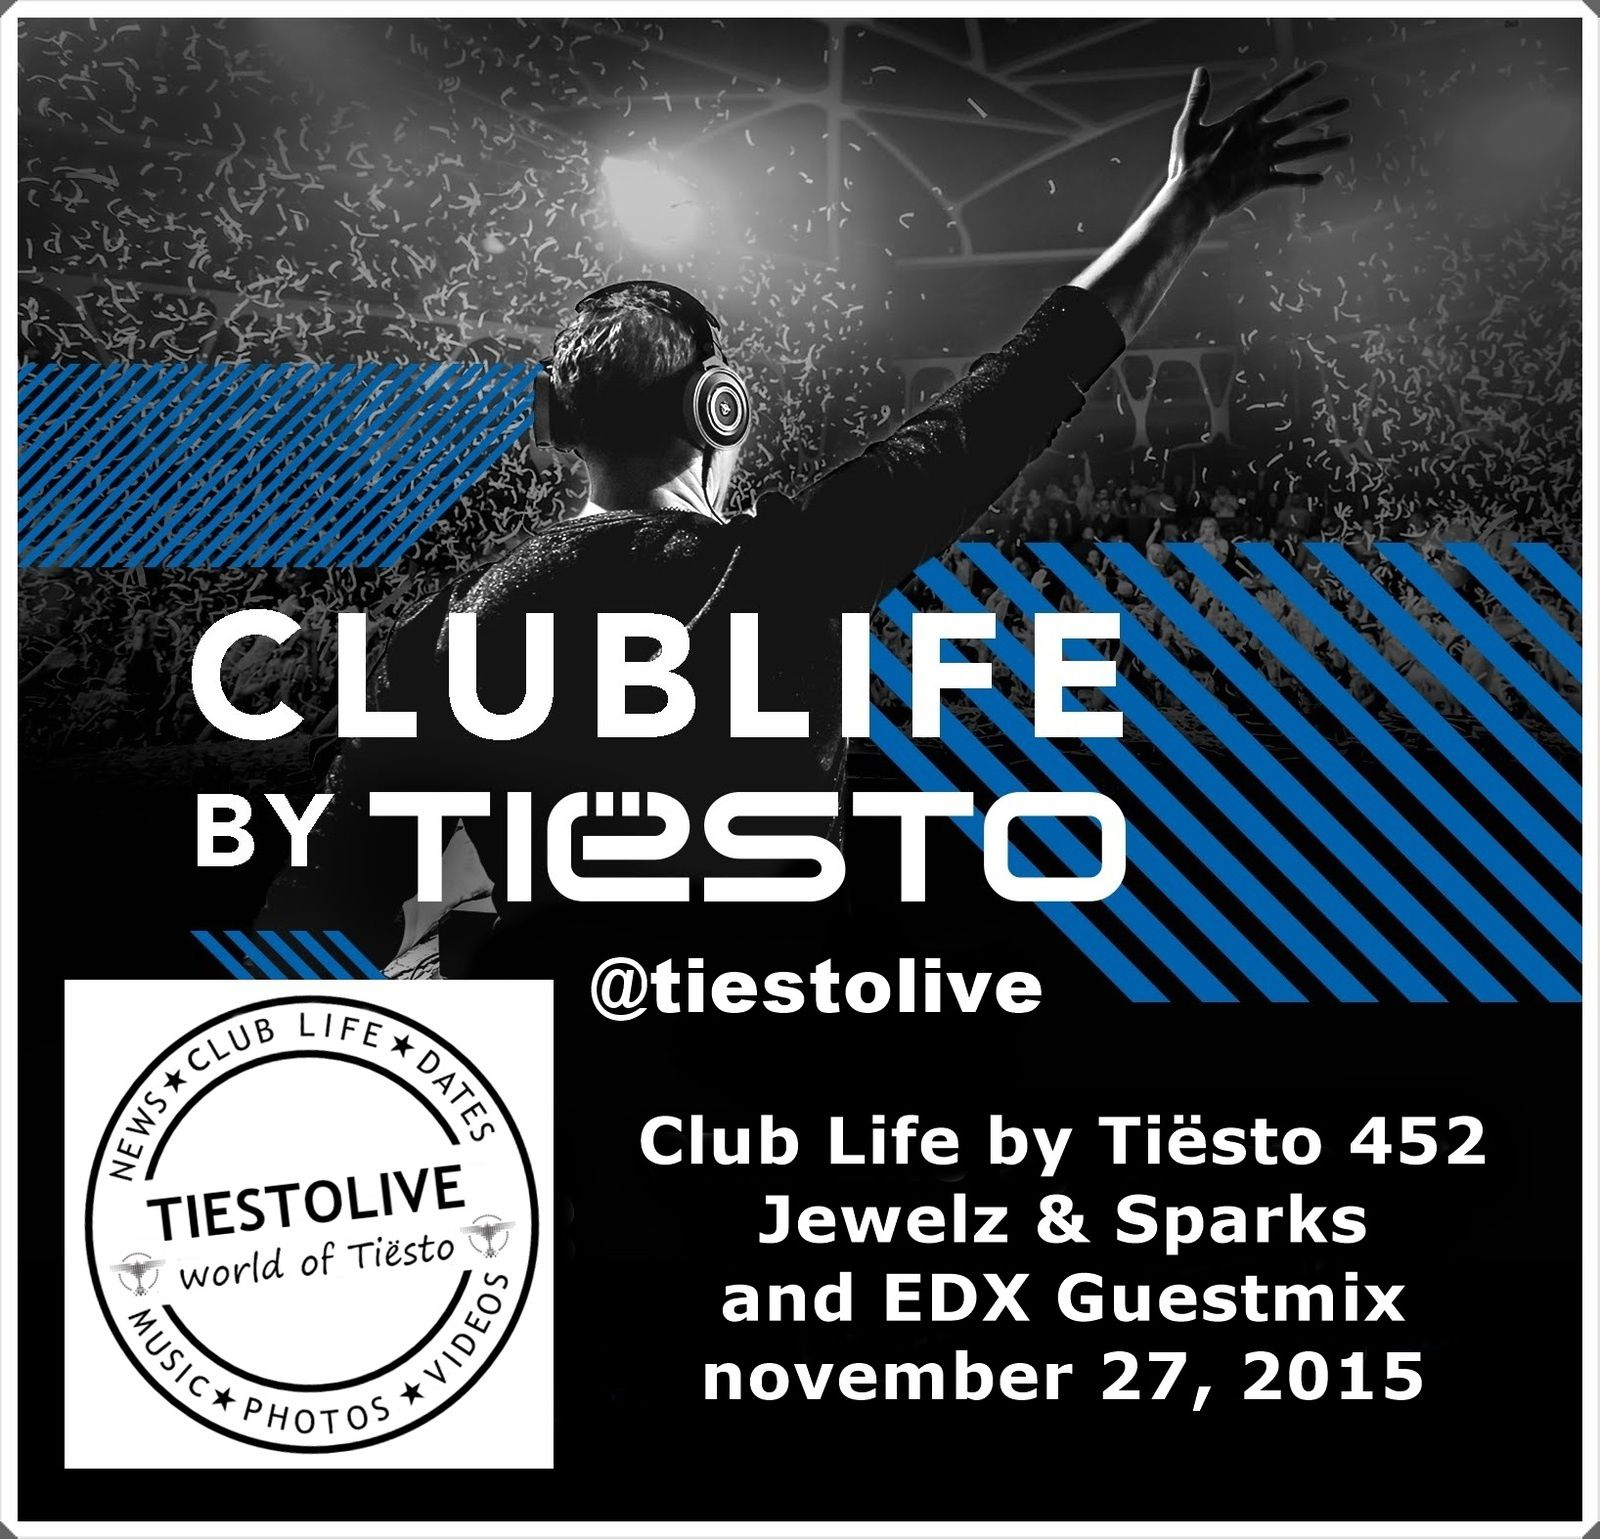 Club Life by Tiësto 452 - Jewelz &amp&#x3B; Sparks and EDX Guestmix - november 27, 2015